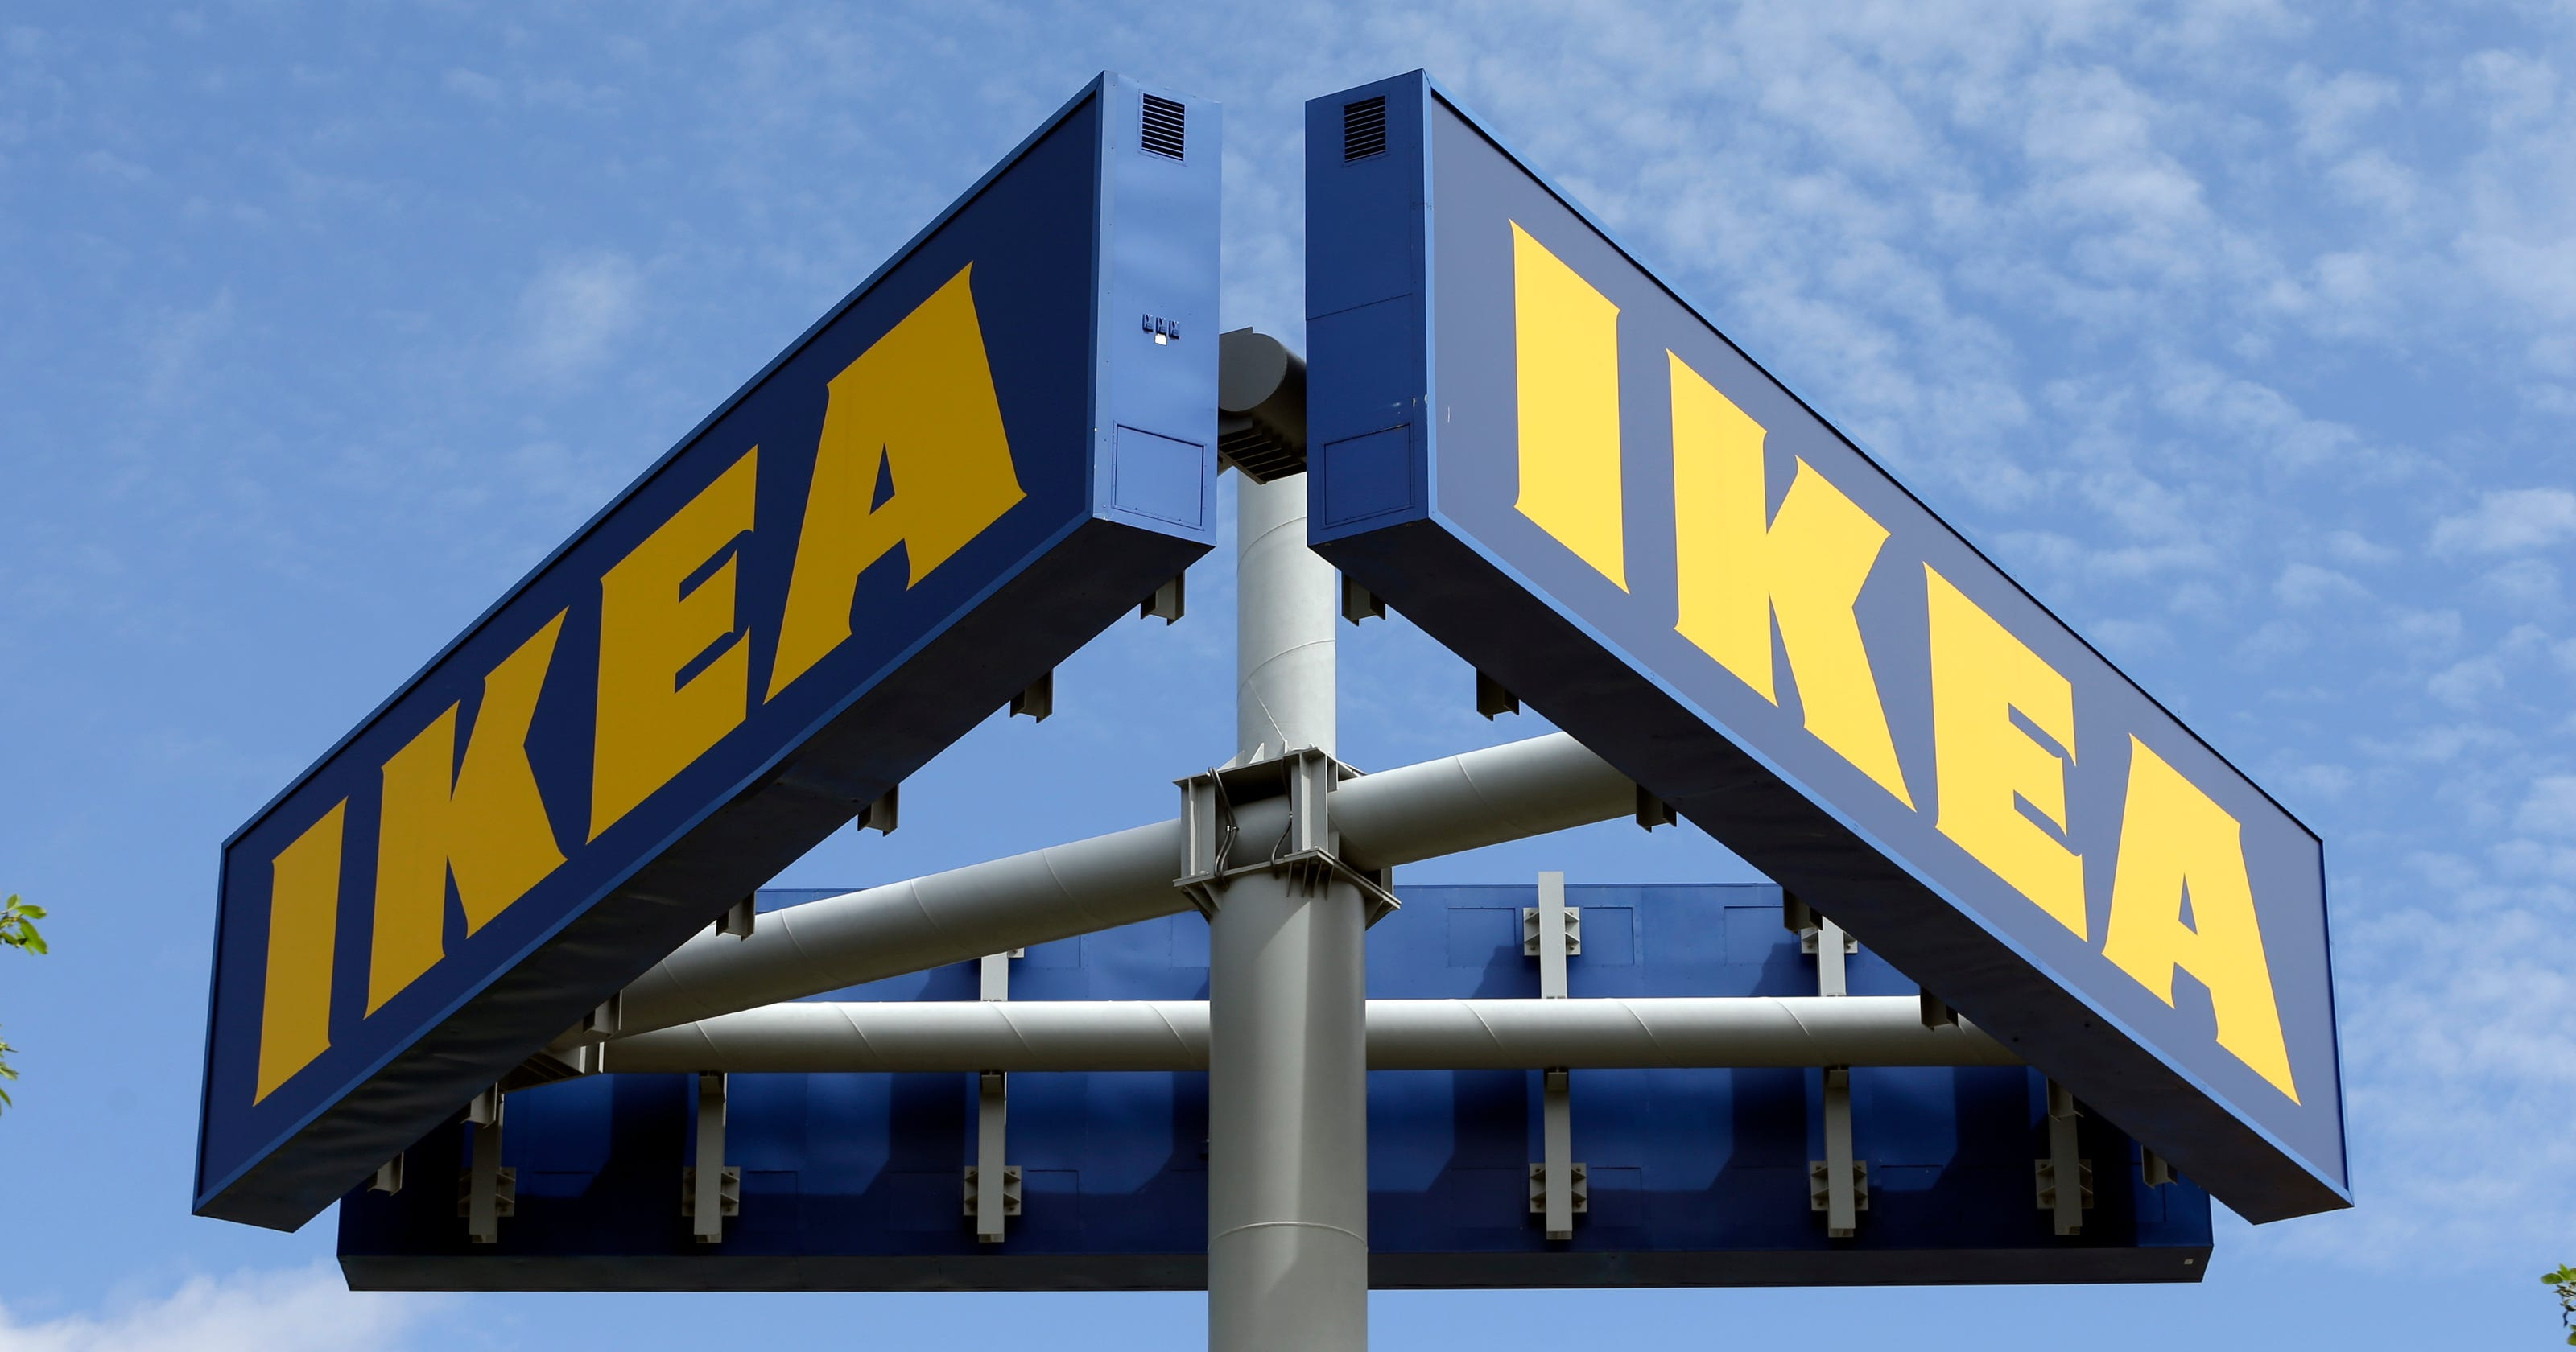 Need help with assembling Ikea furniture? Retailer acquires